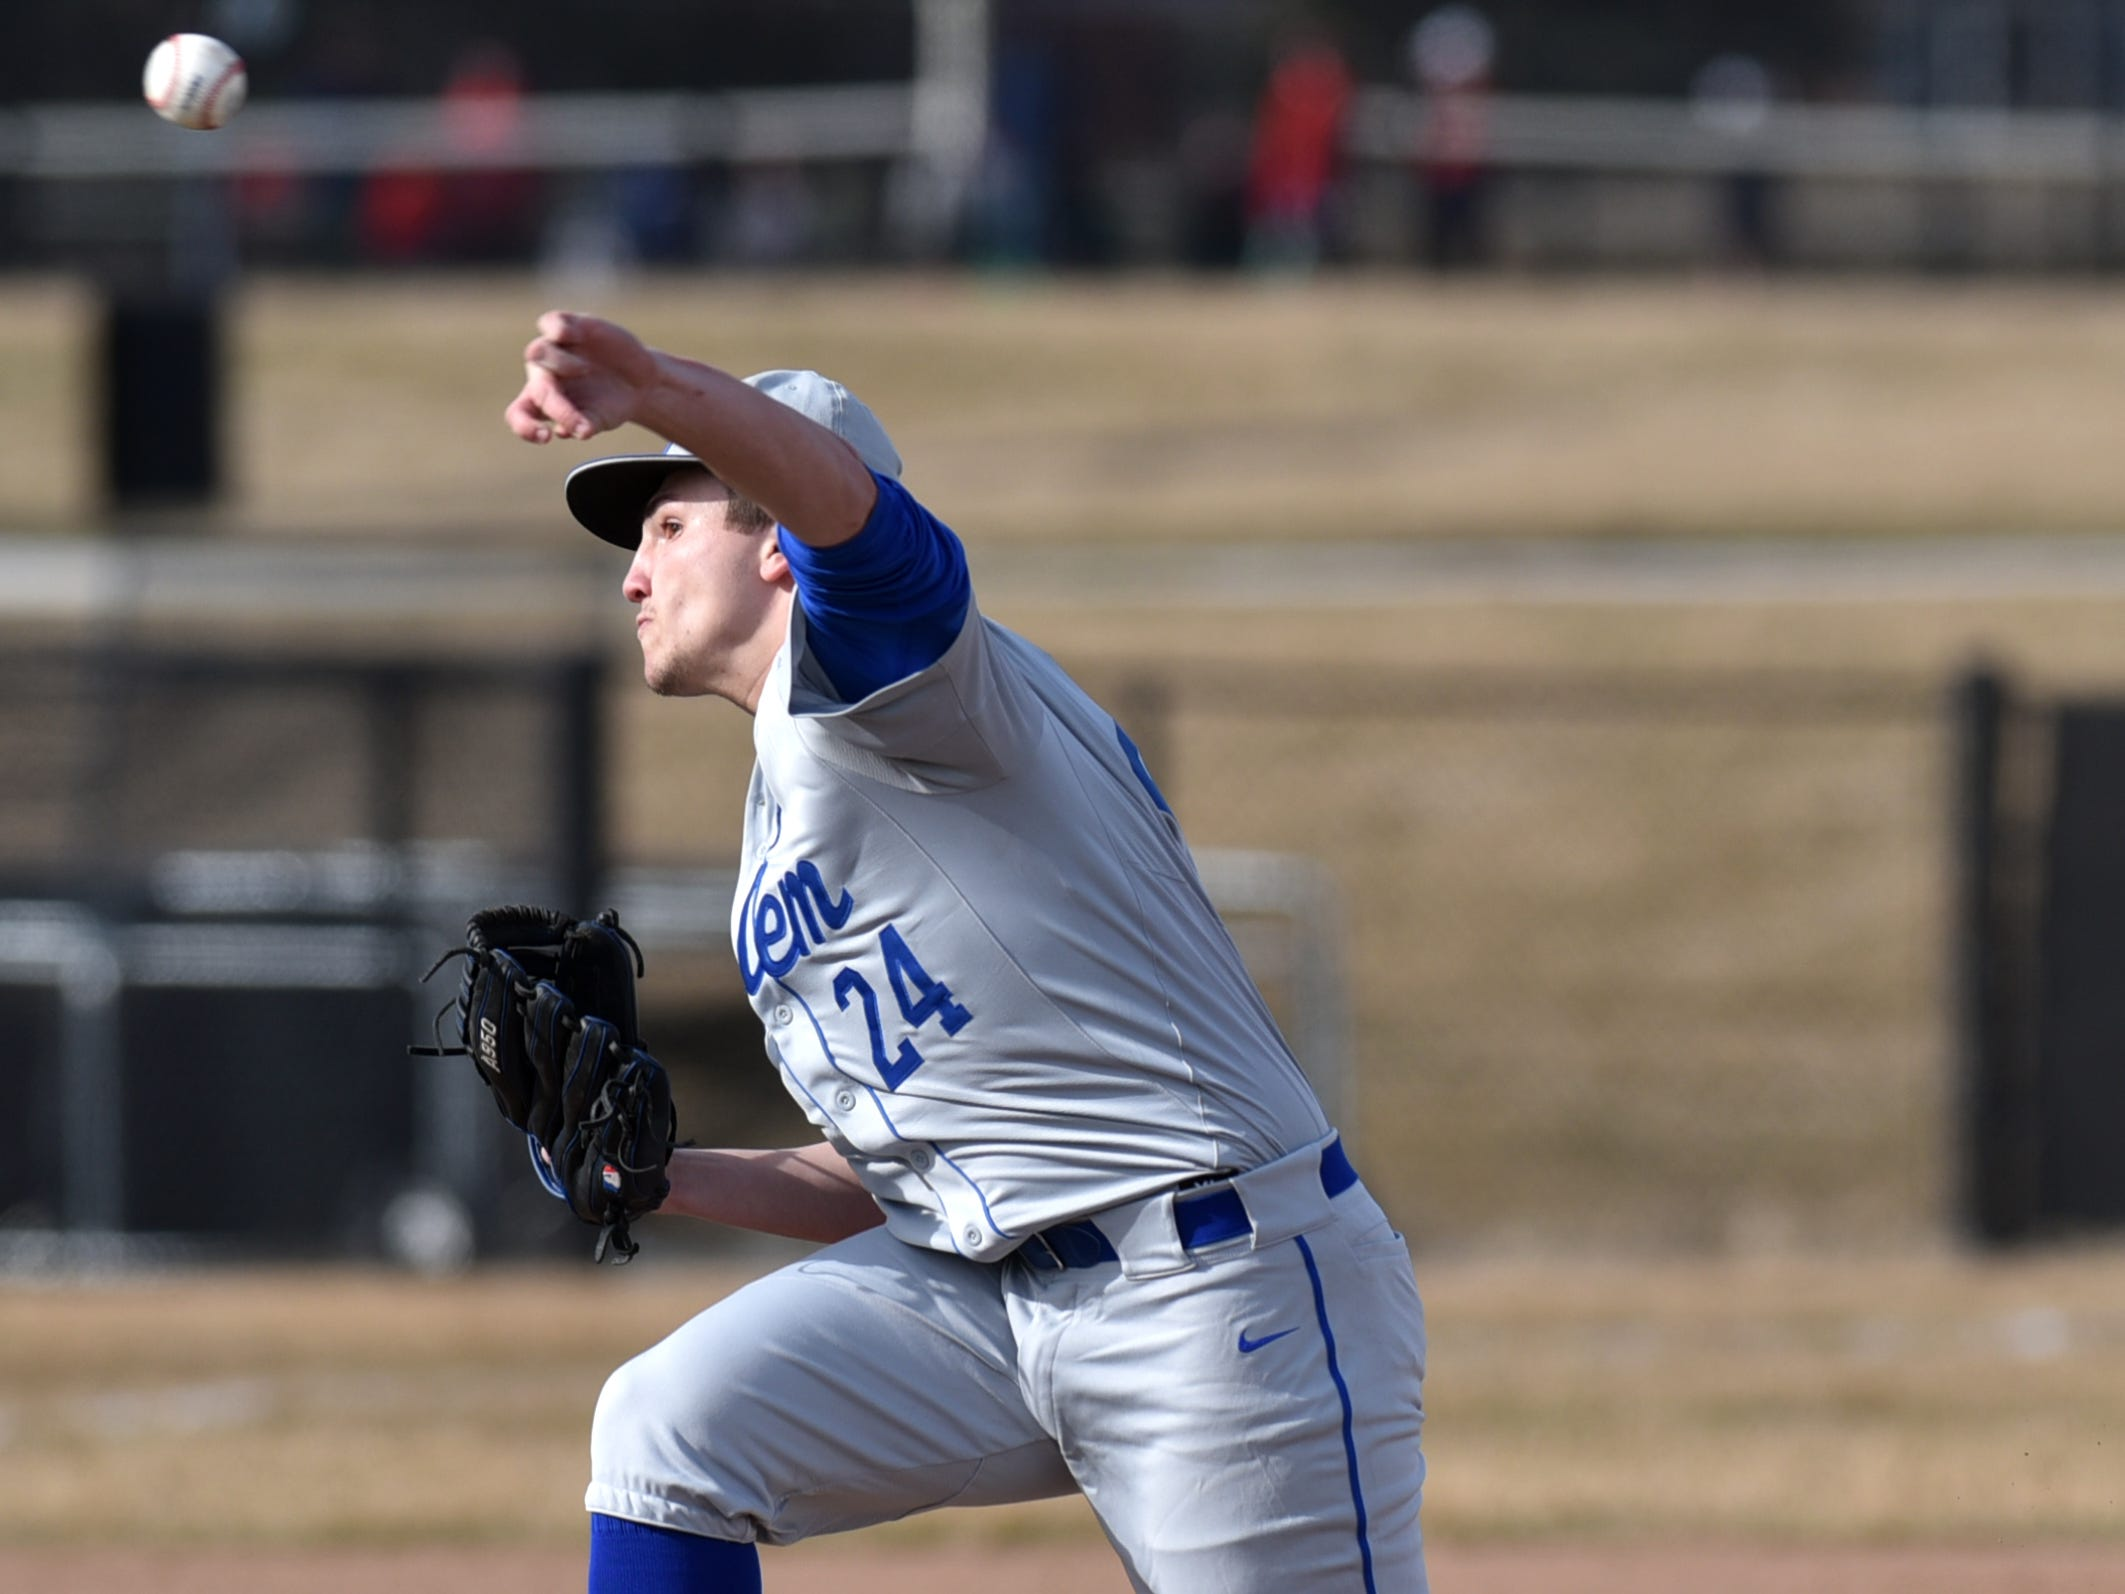 Salem Rock pitcher Owen Keyes pitches in their March 27 game against Plymouth.